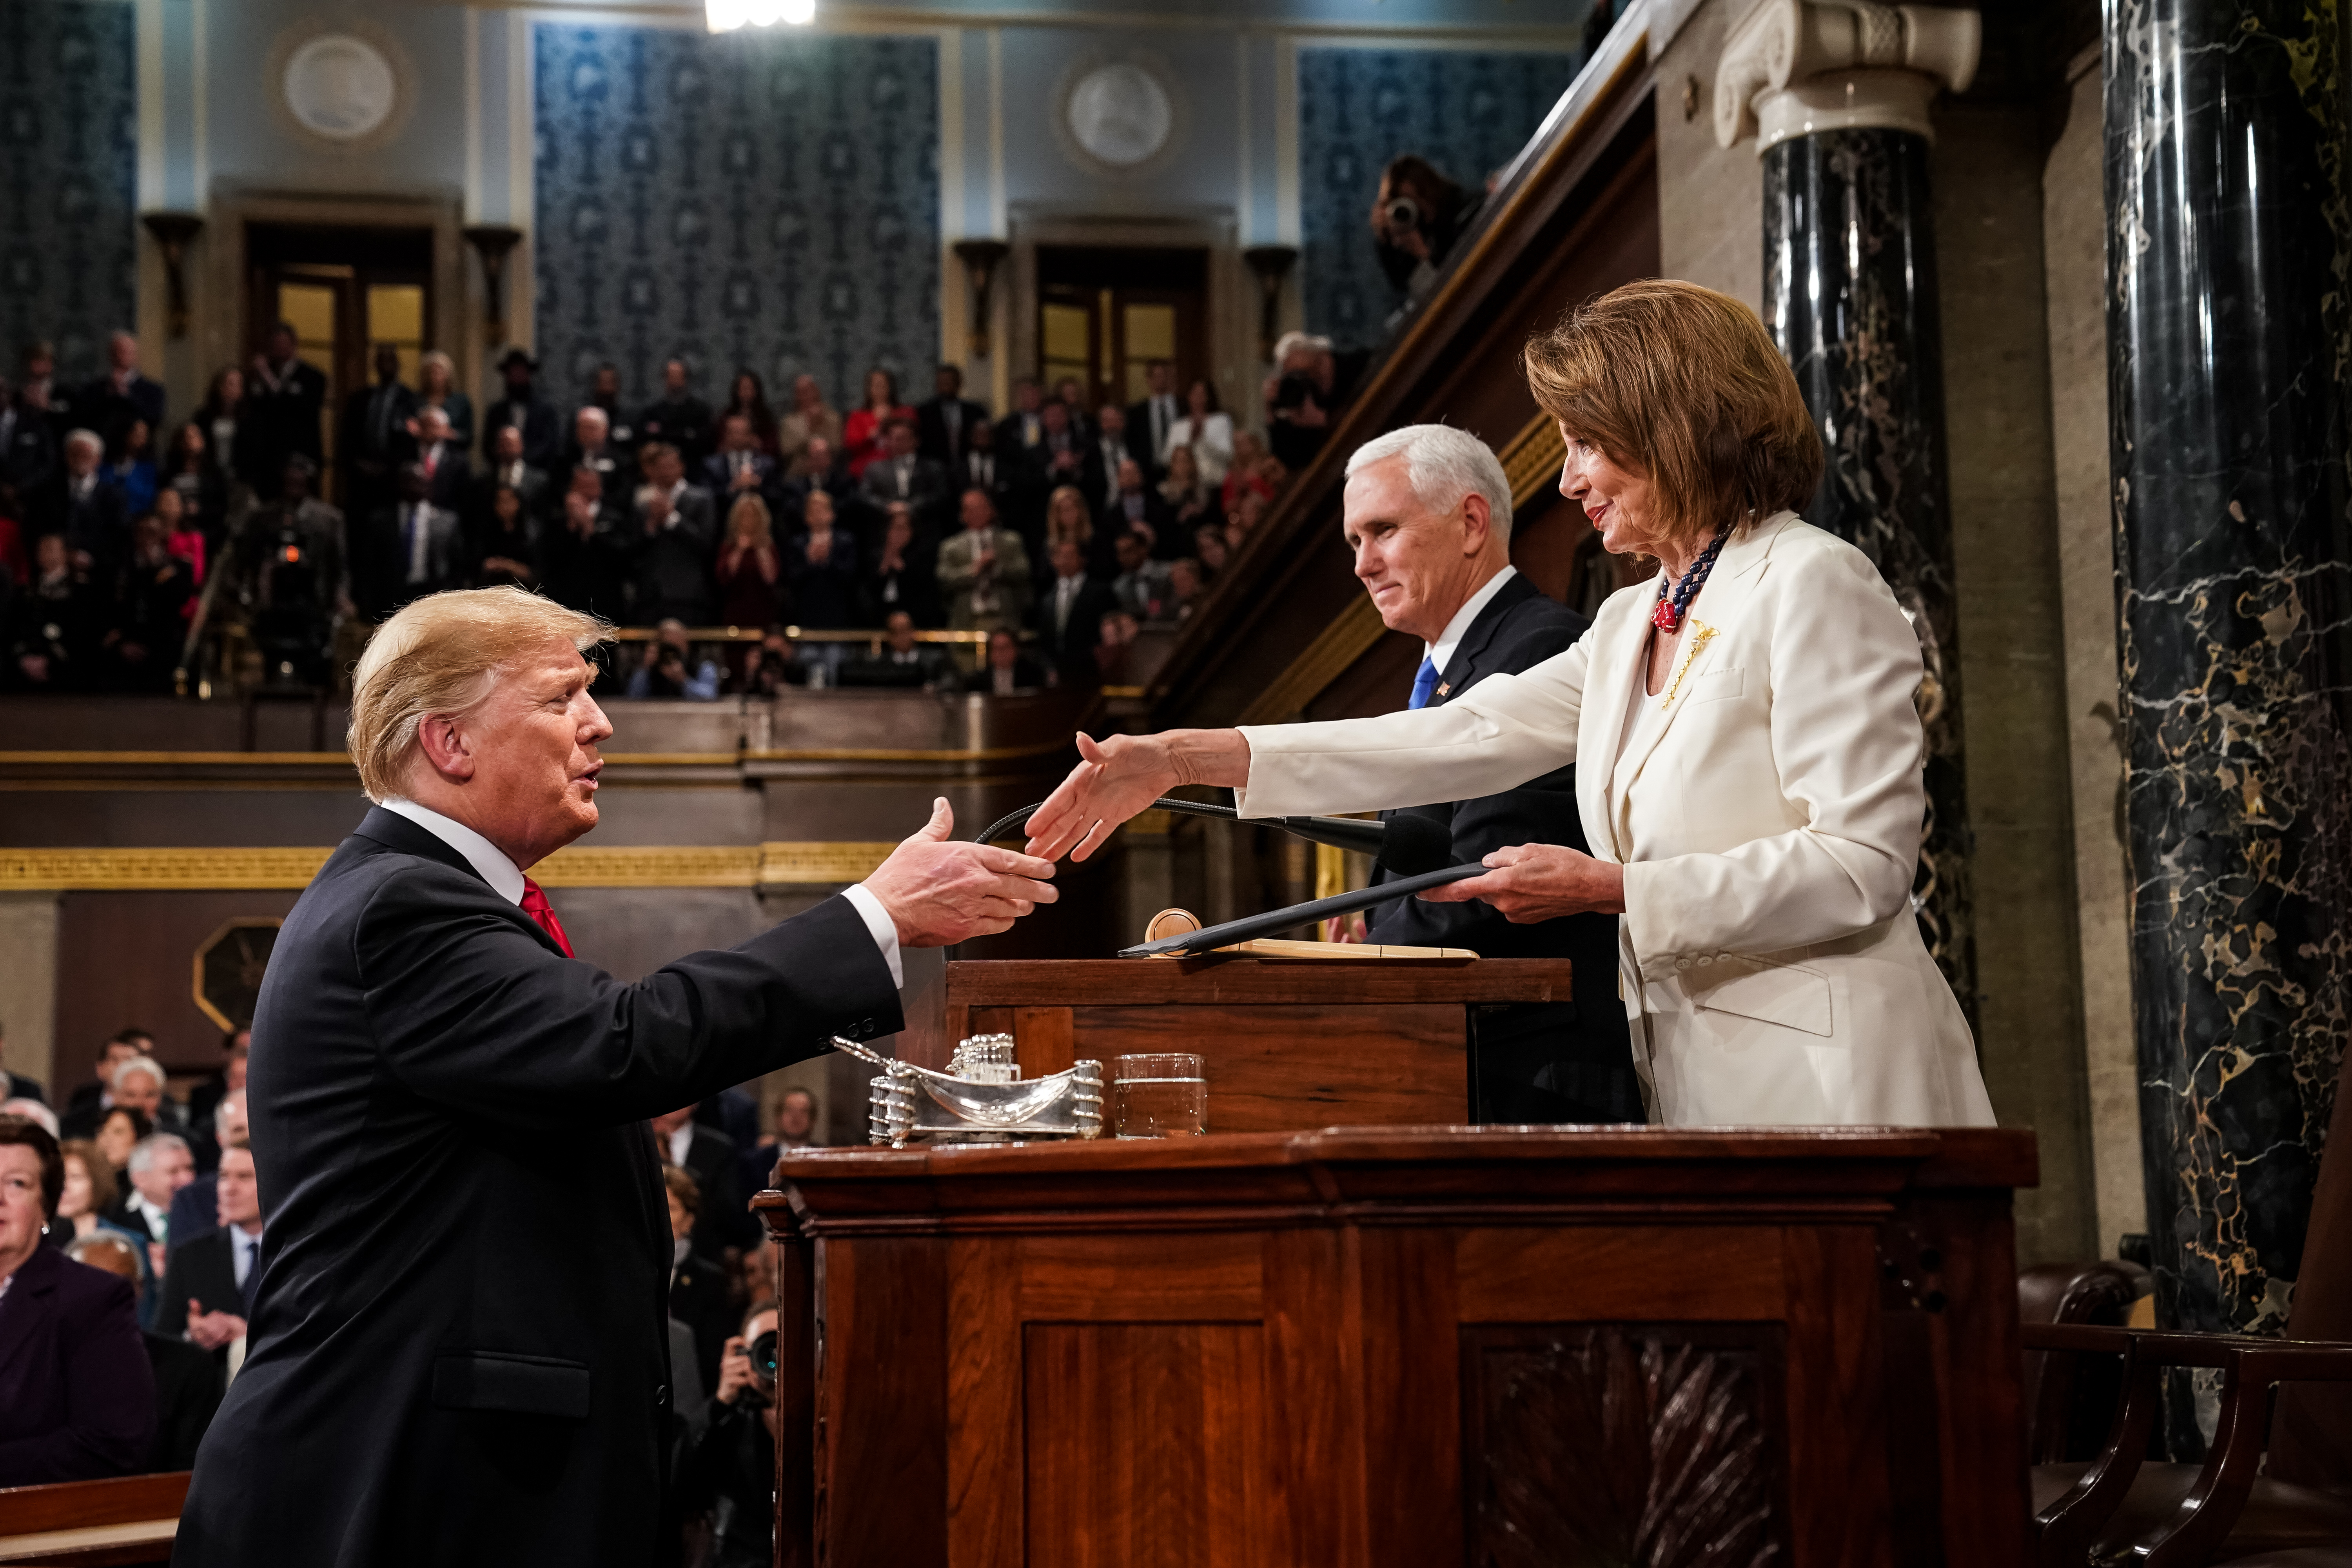 Why Pelosi is worried that Trump won't leave office, explained - Vox